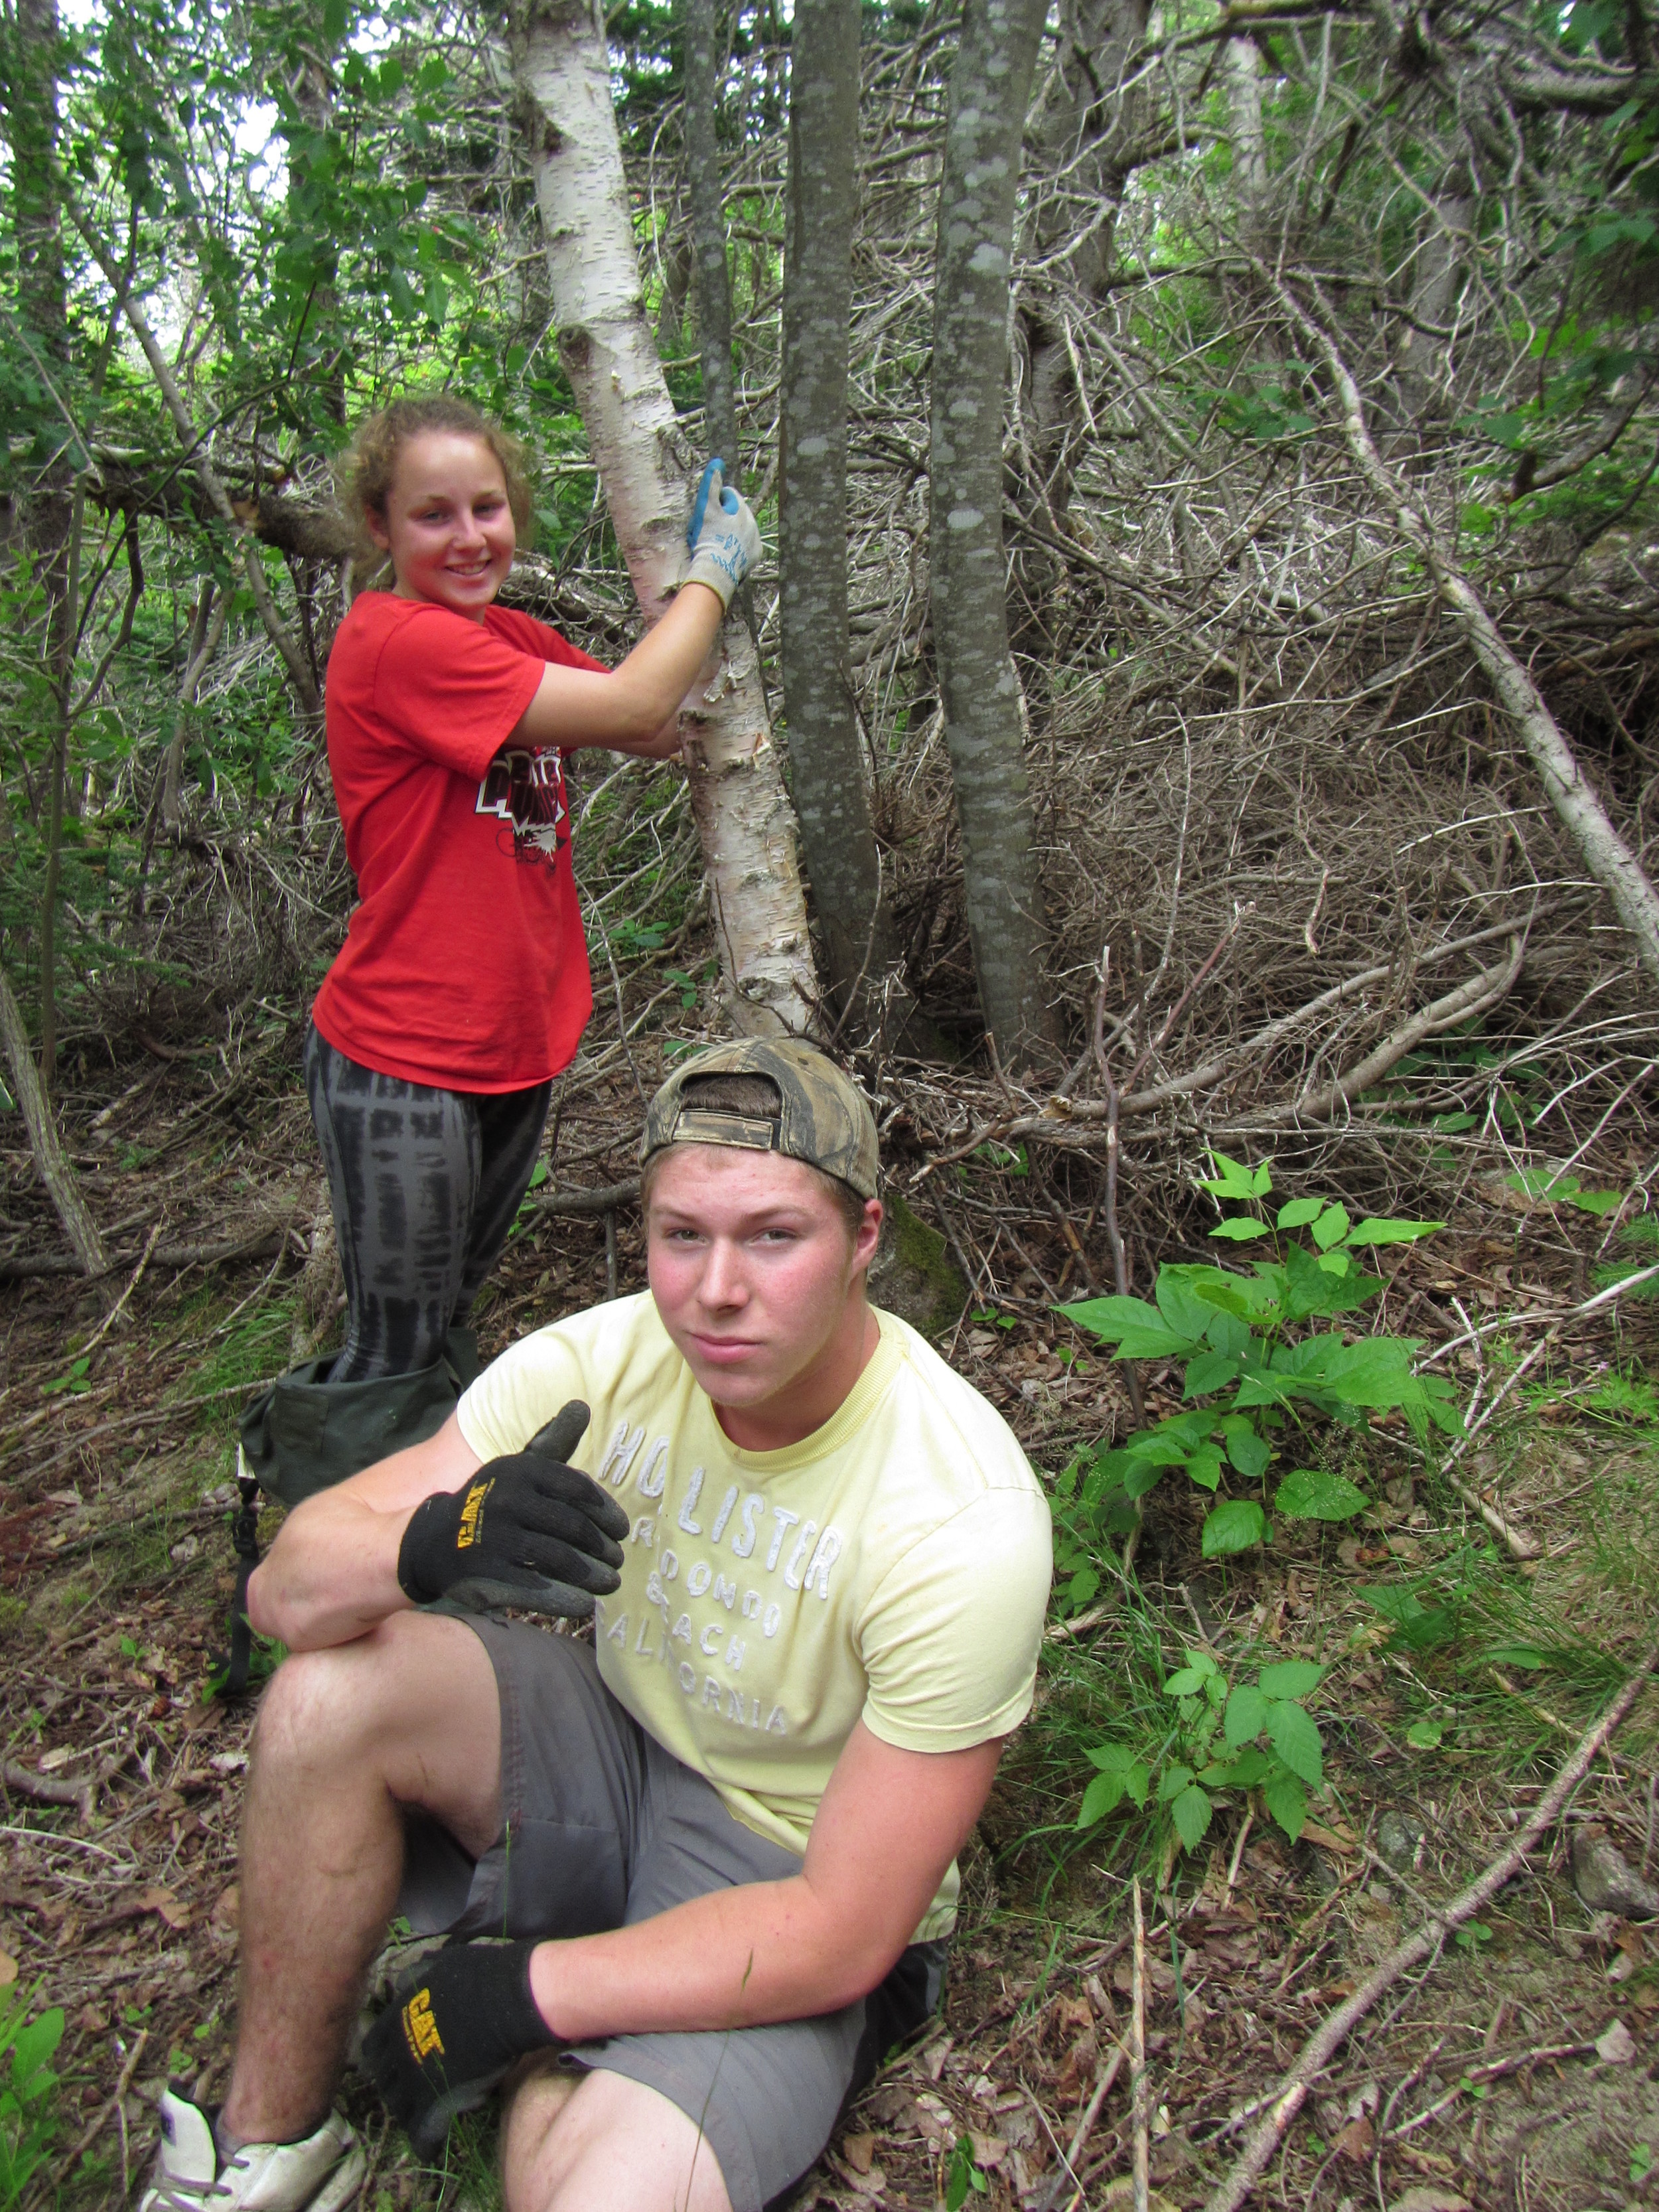 Rachelle Aucoin and Logan Lapierre taking a break after completing the walking trail!